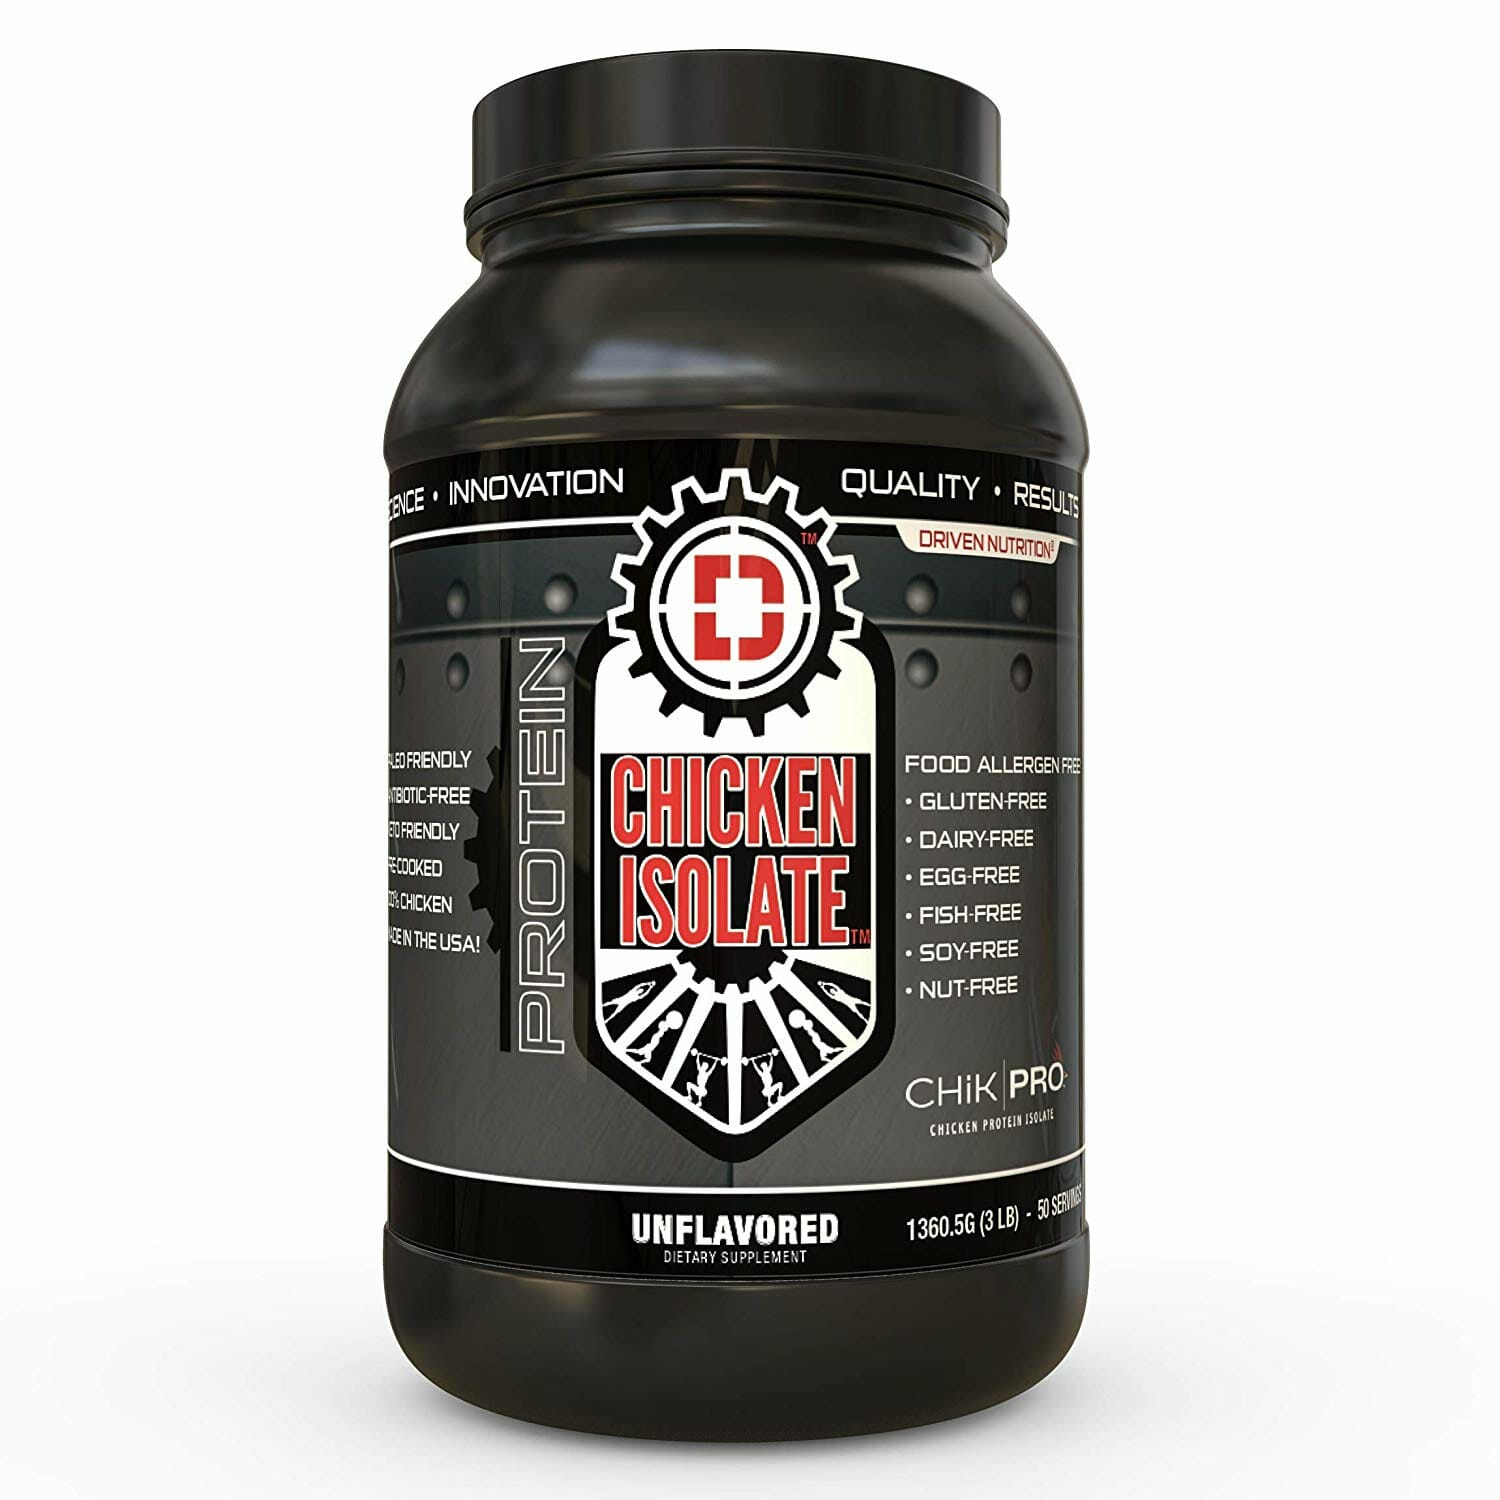 CHiKPRO Chicken Isolate Protein